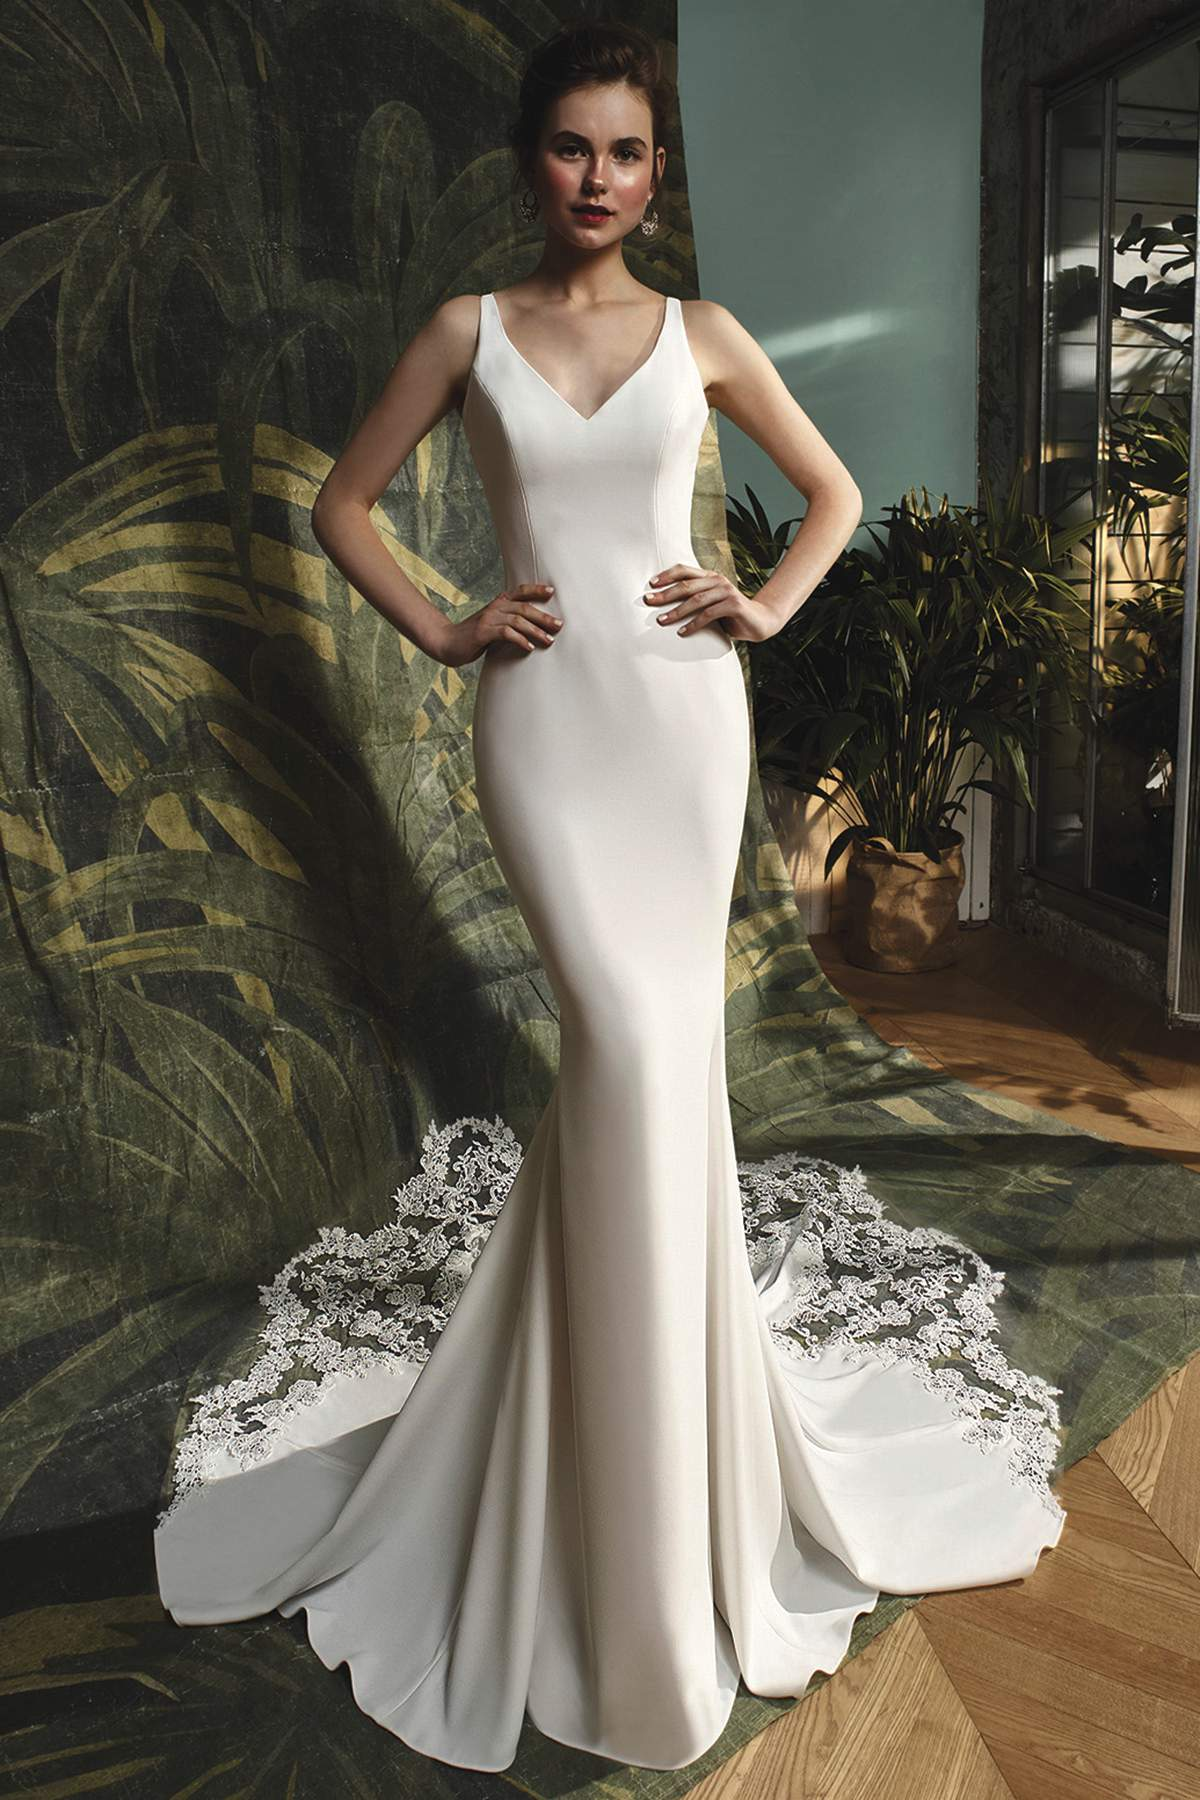 0476c0a32b6 Kalypso by Blue by Enzoani - Find Your Dream Dress